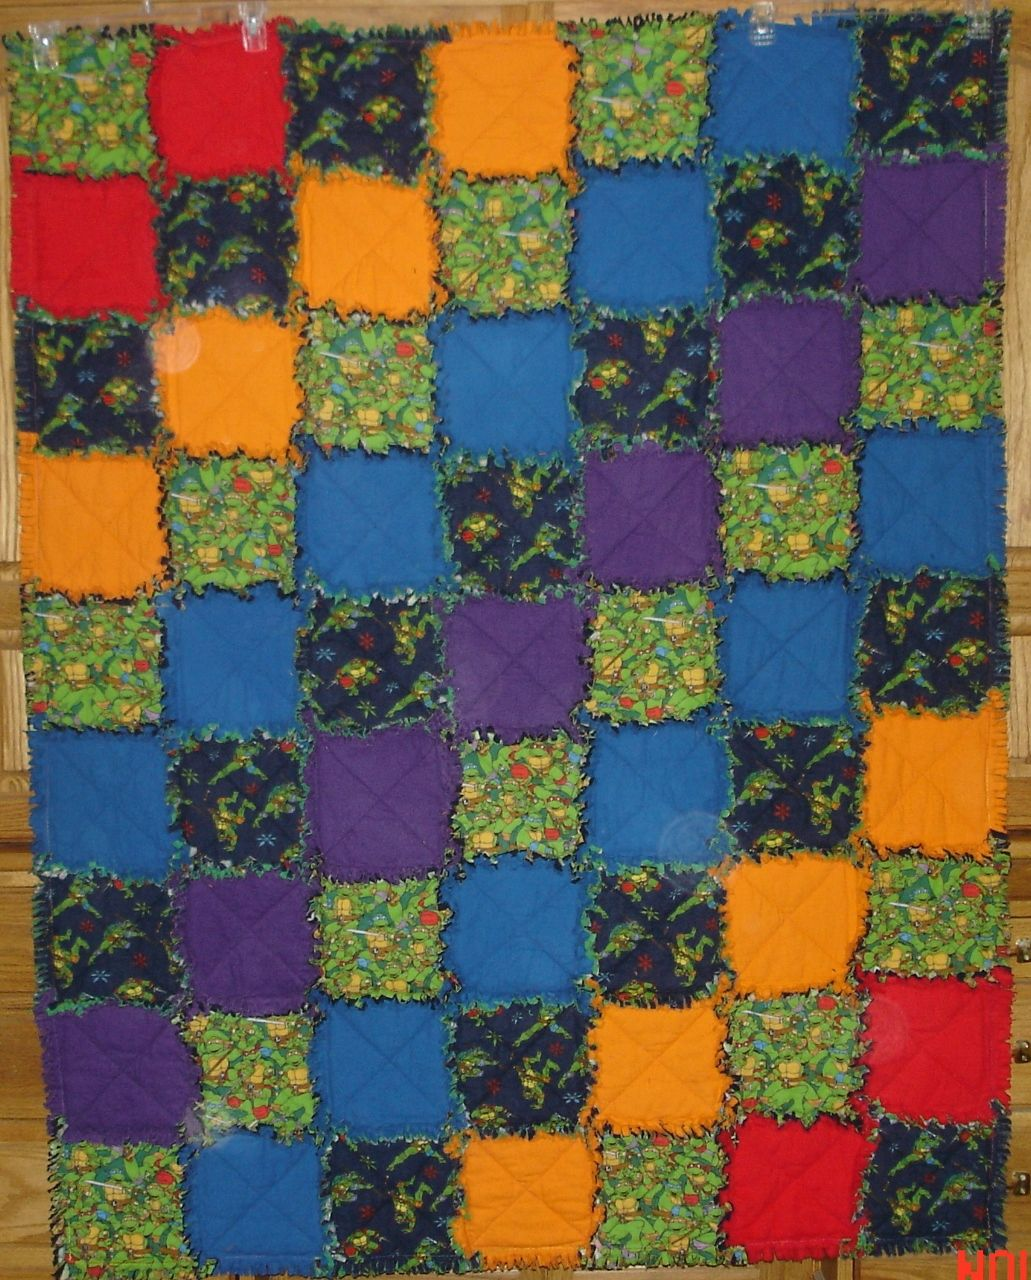 Teenage Mutant Ninja Turtle cotton flannel rag quilt handmade ... : turtle rag quilt - Adamdwight.com